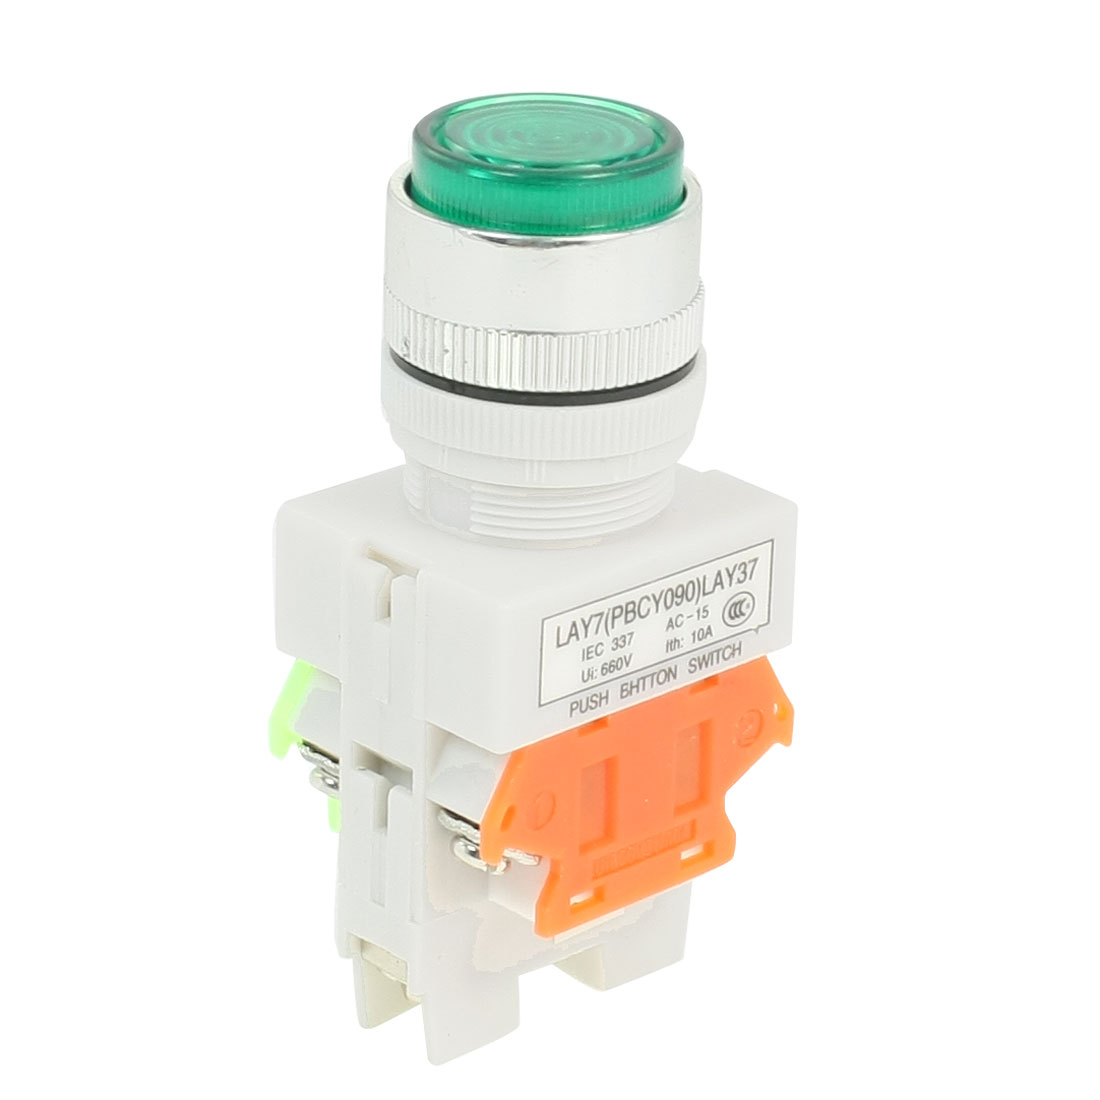 660VAC 10A 1NO 1NC DPST Green Momentary Push Button Switch w AC 220V LED Lamp